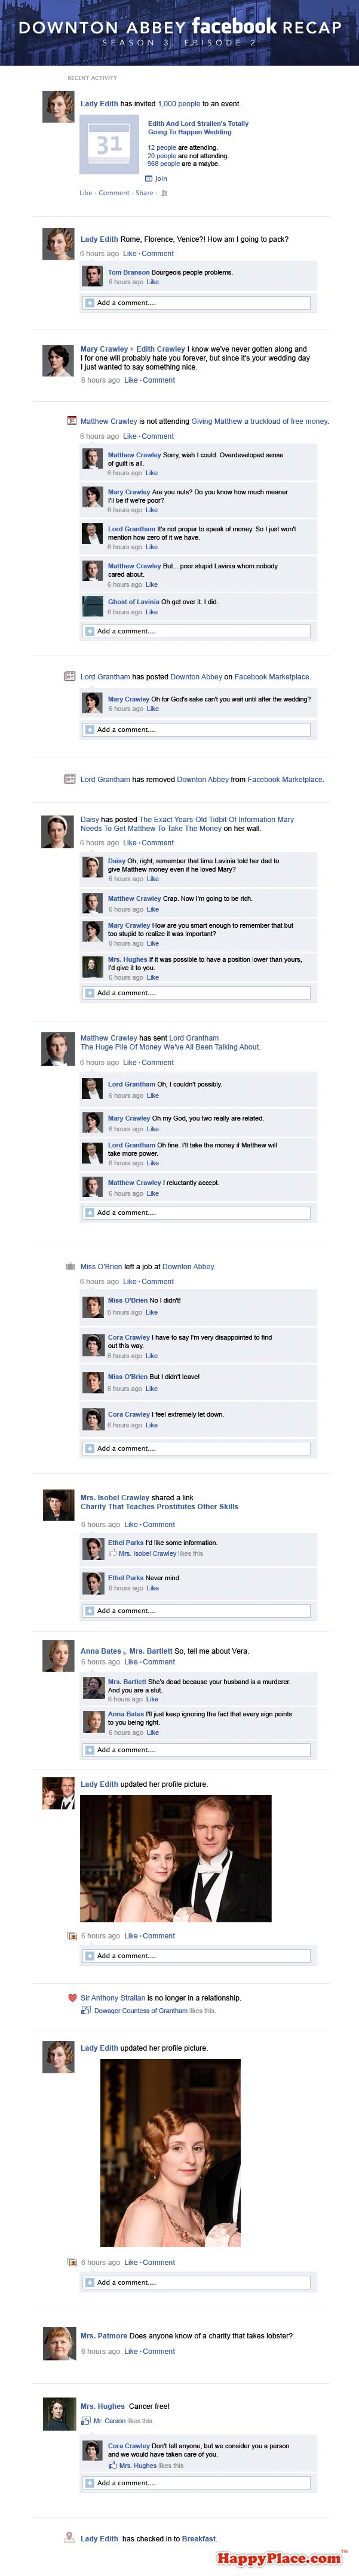 SPOILER ALERT!!! If this past Sunday's Downton Abbey took place entirely on Facebook.